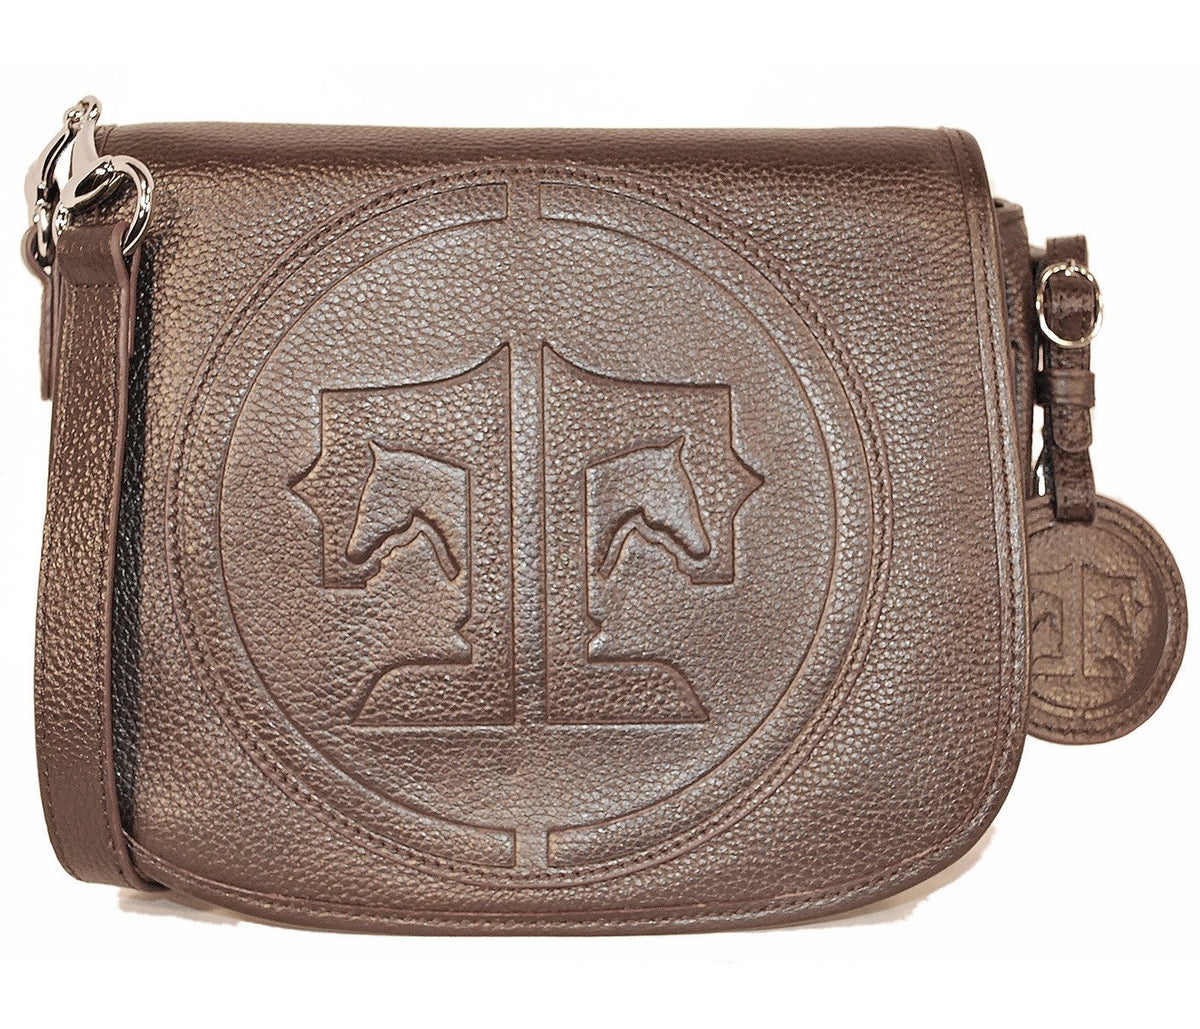 Tucker Tweed Leather Handbags Dark Chocolate / Signature The Camden Crossbody: Signature